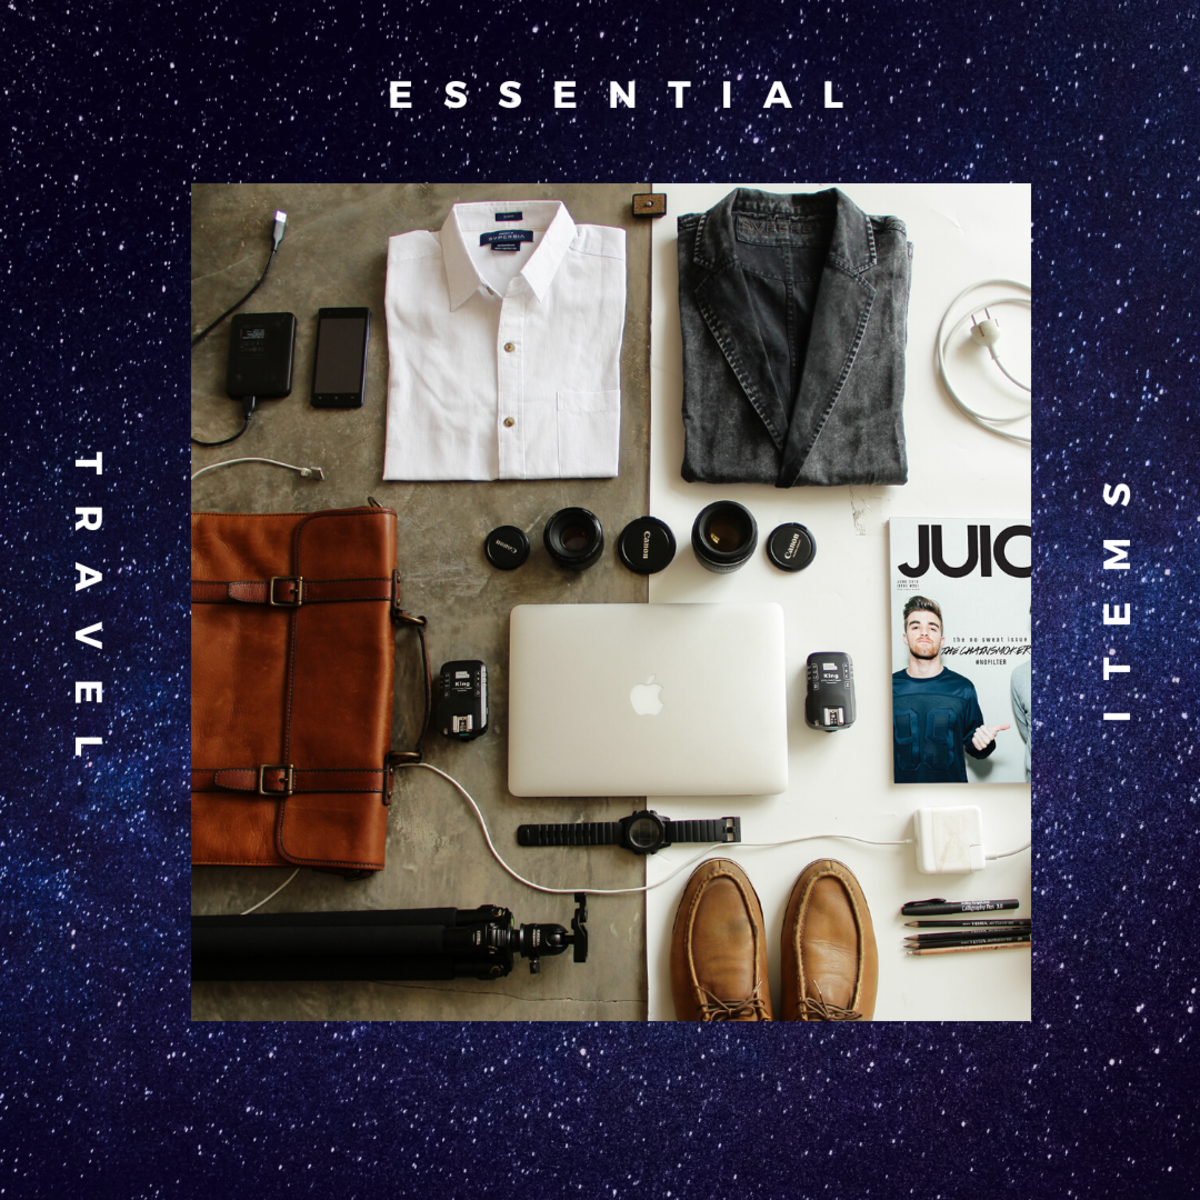 The Ultimate List of Essential Travel Items